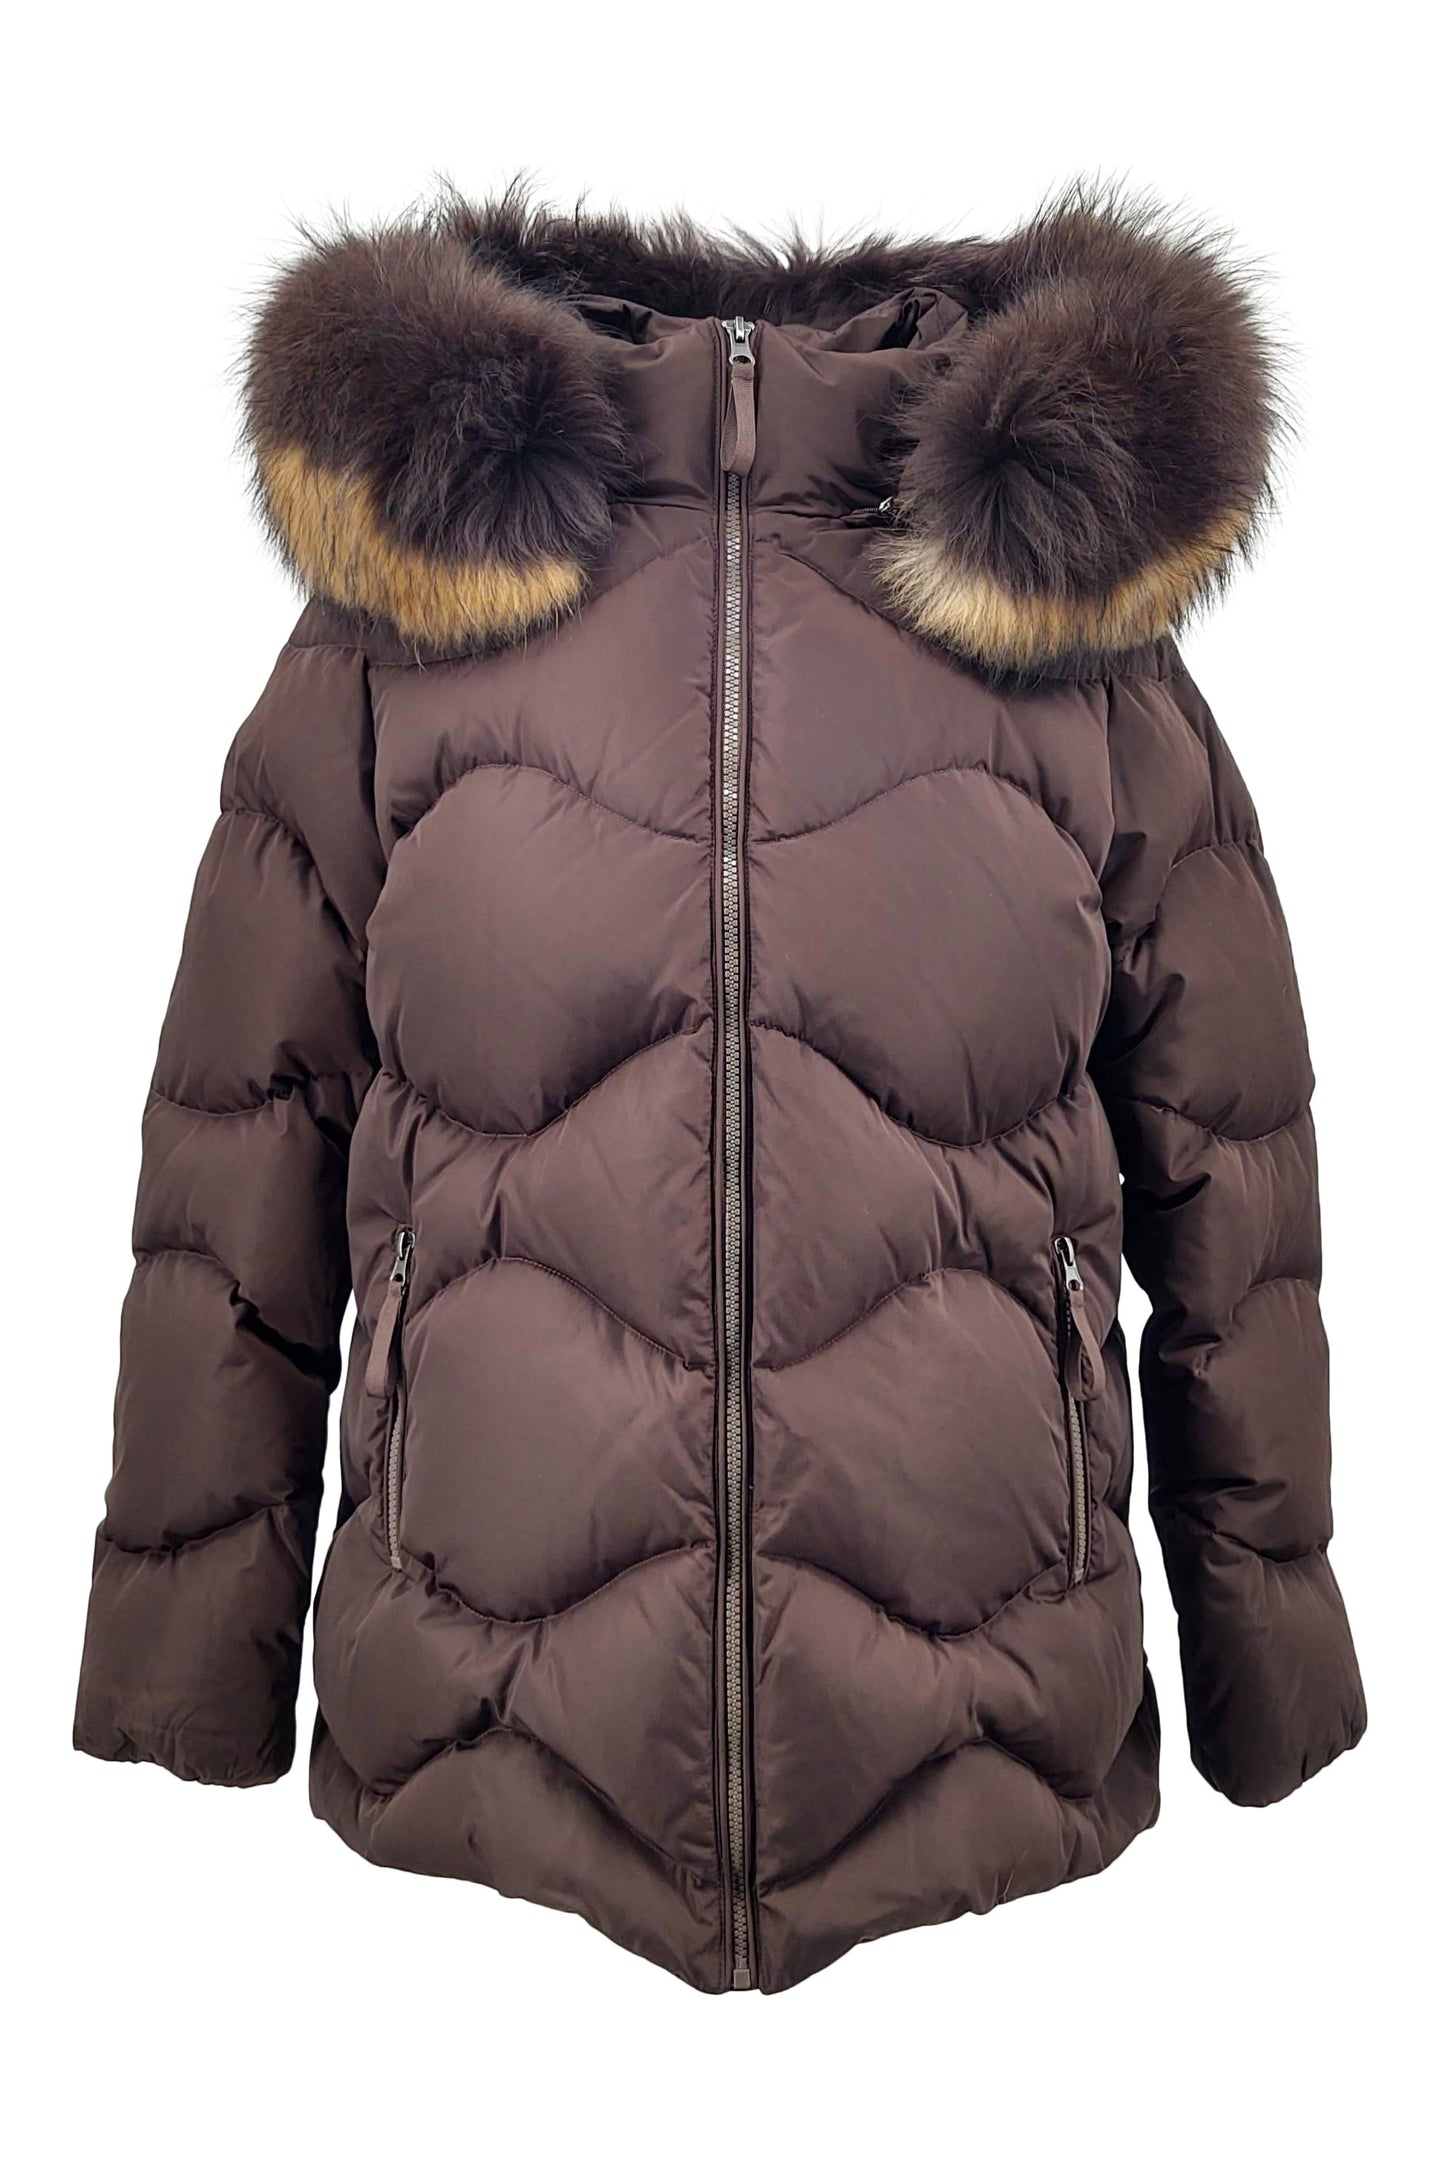 F15, 73 cm. - Hood - Down - Women - Dark Brown | STAMPE PELS